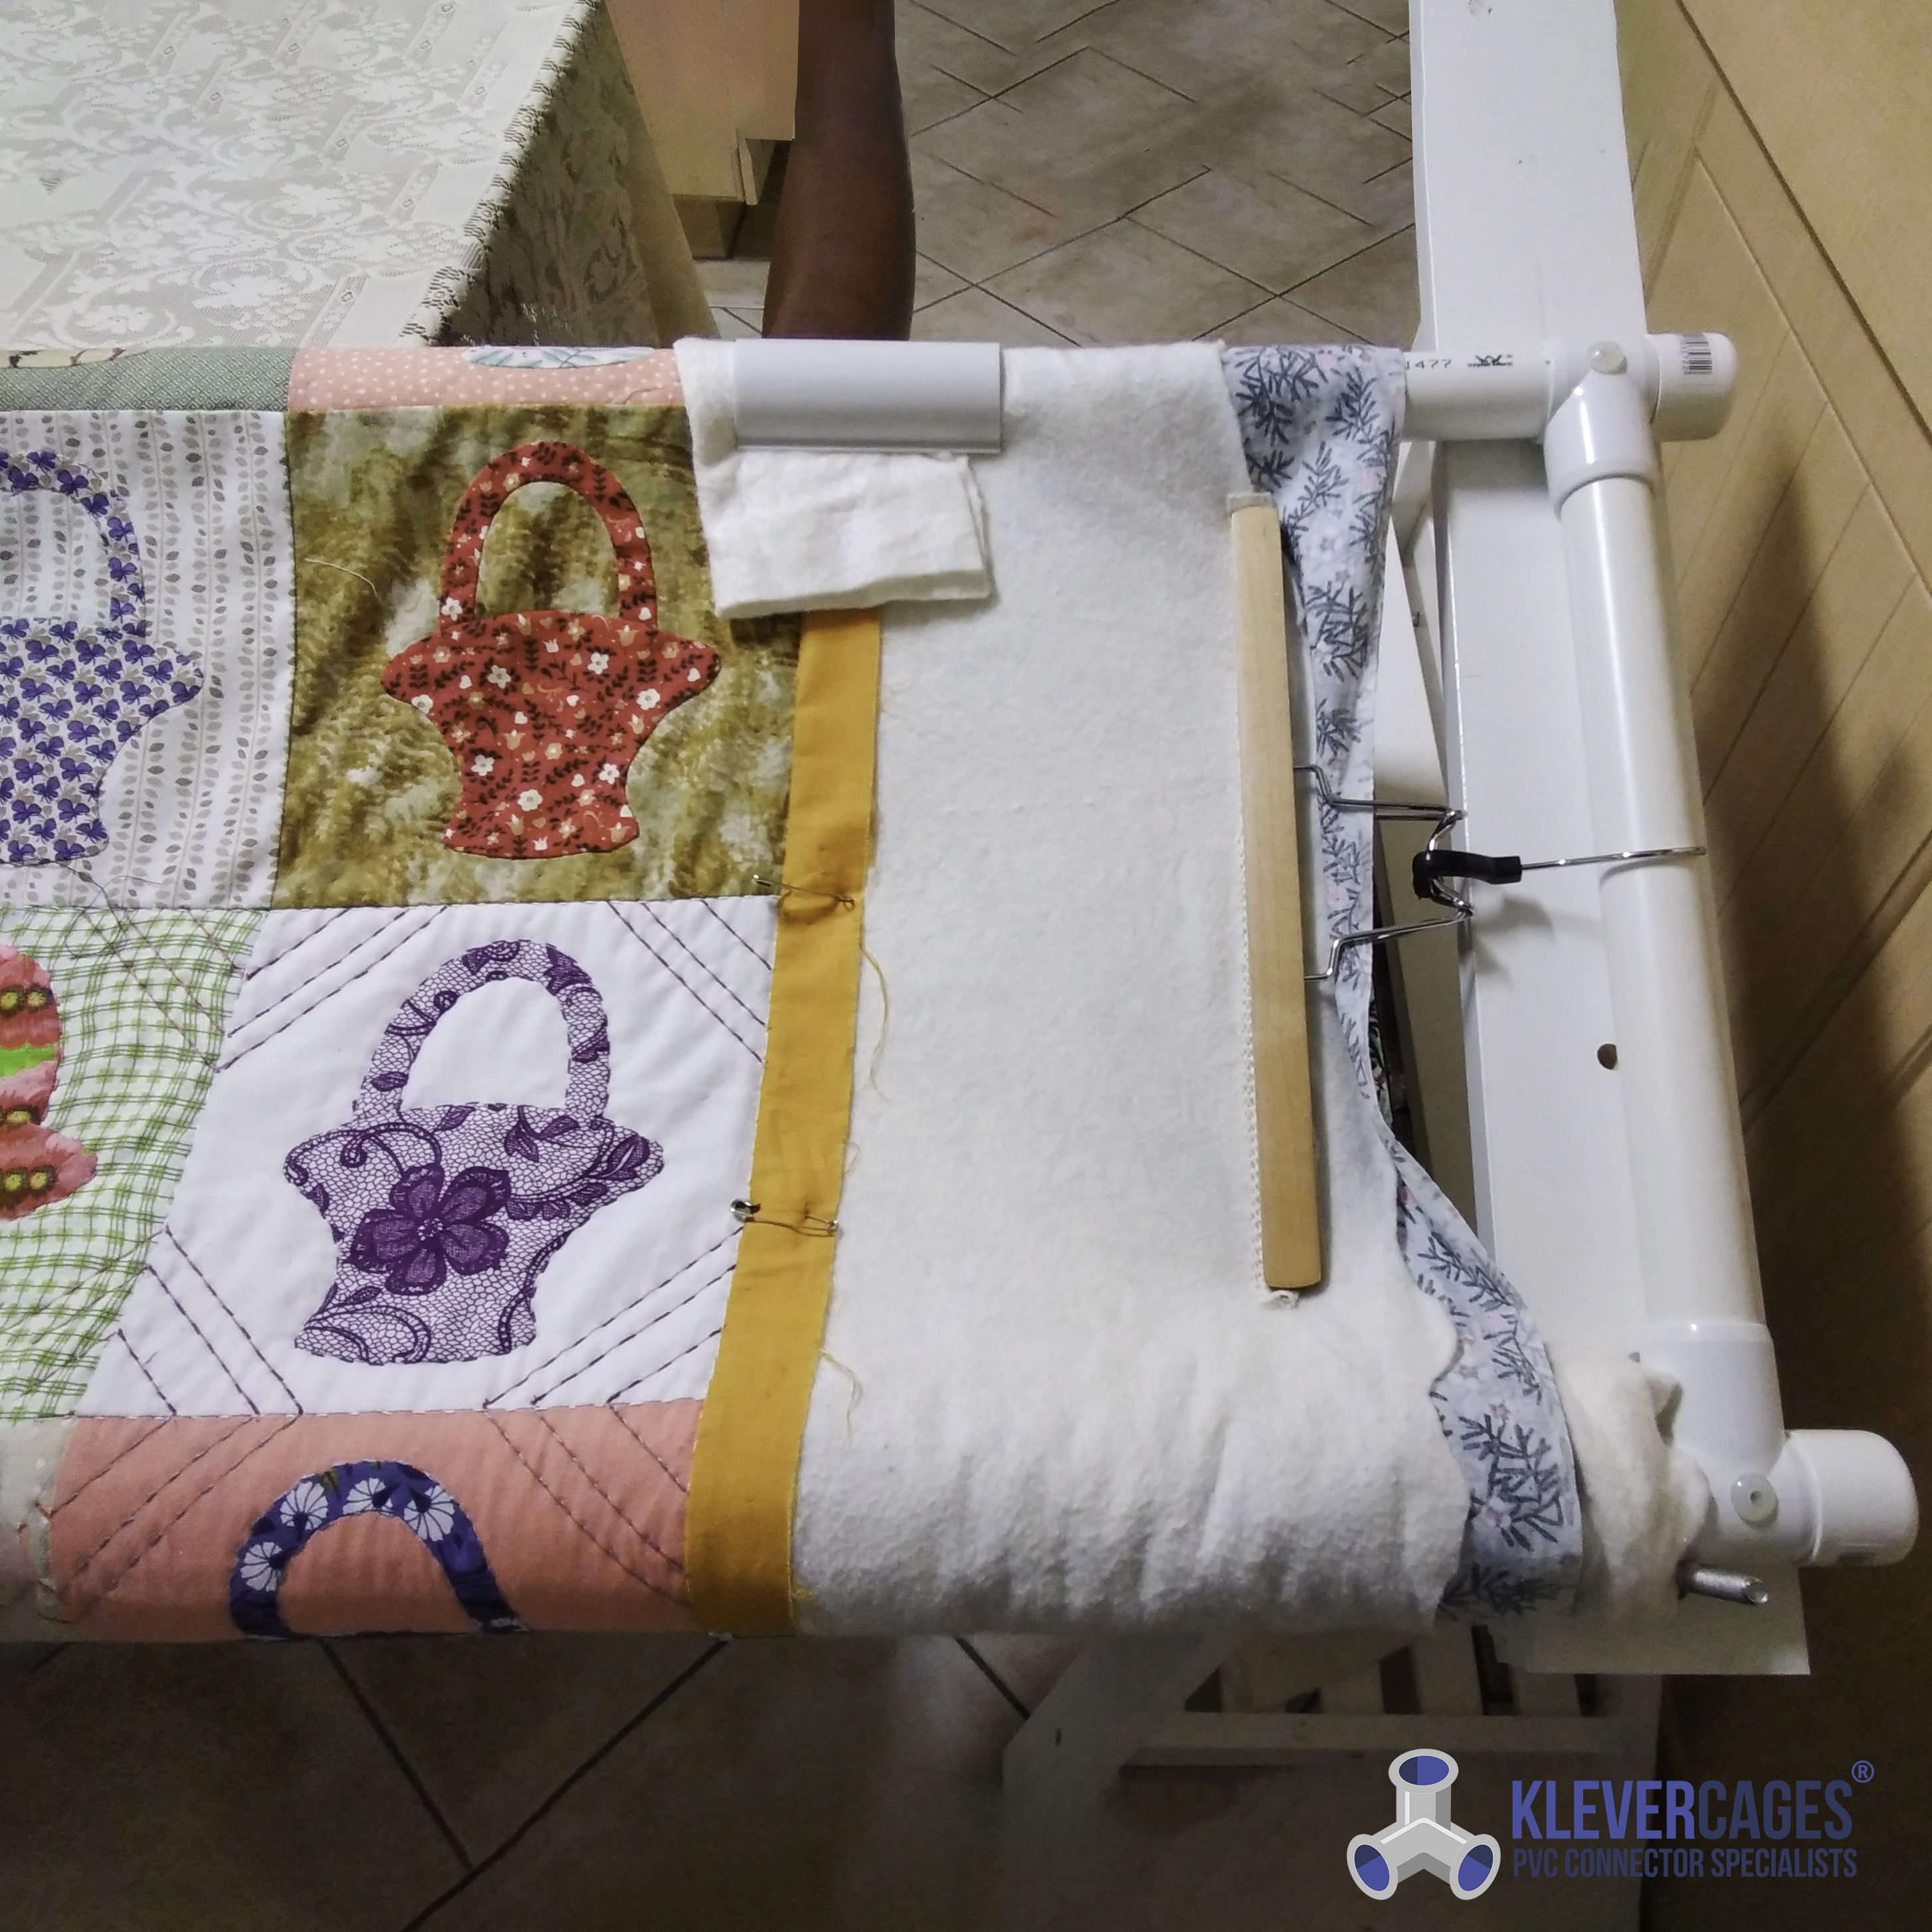 DIY quilting frame with sliding top bar using a 25mm slip tee from Klever Cages